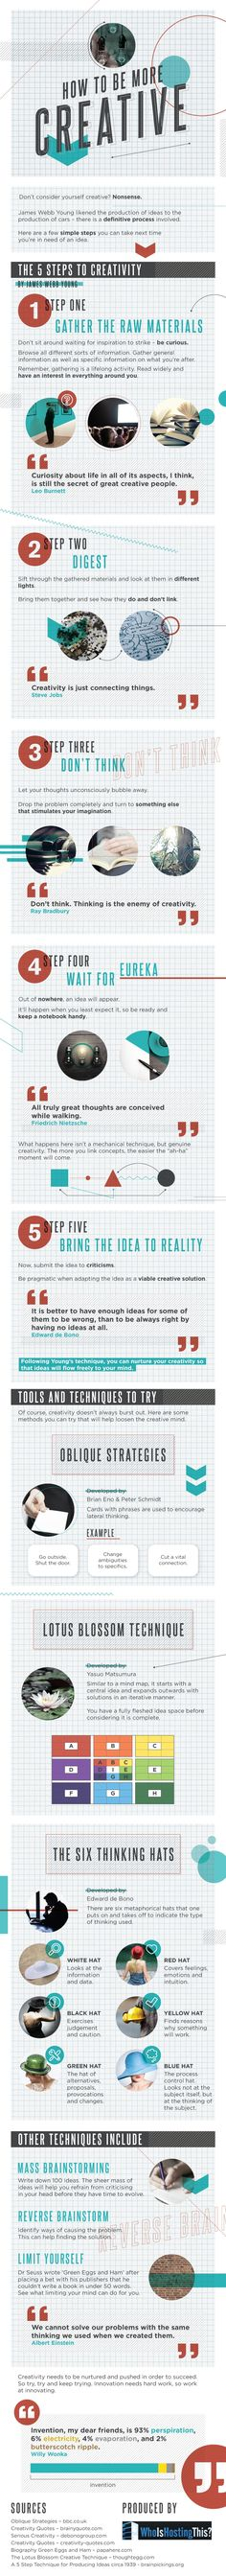 How To Be More Creative #infographic